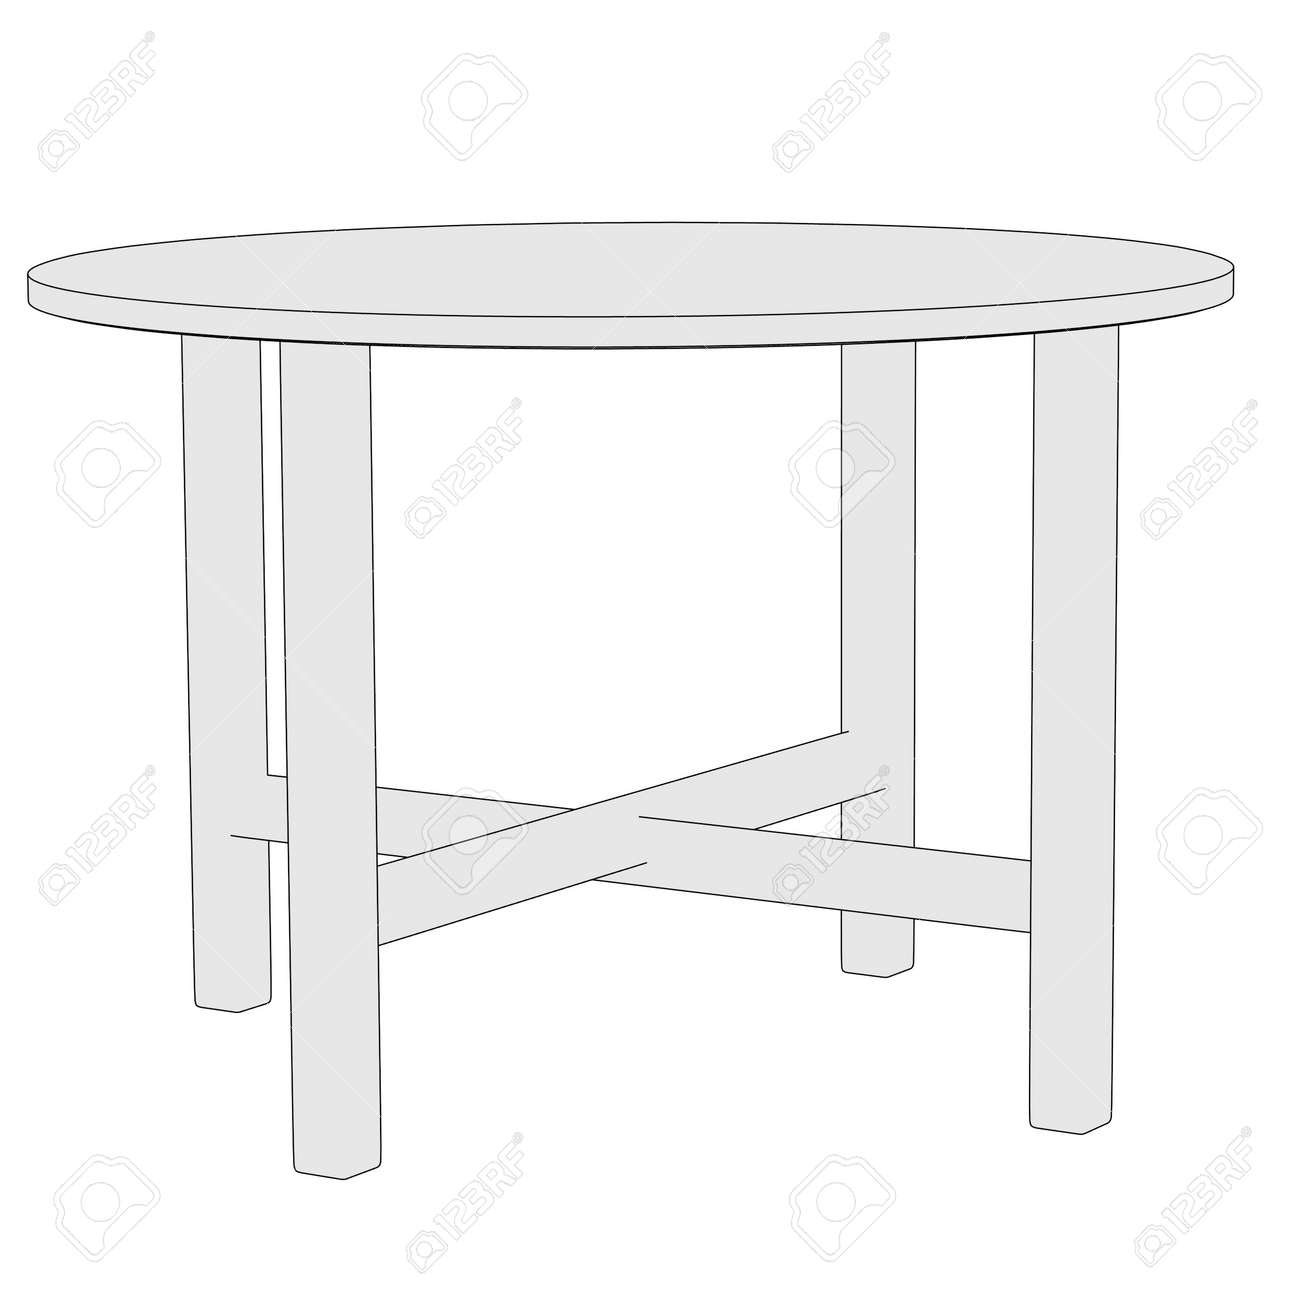 Cartoon Image Of Garden Furniture Stock Photo Picture And Royalty Free Image Image 25003601